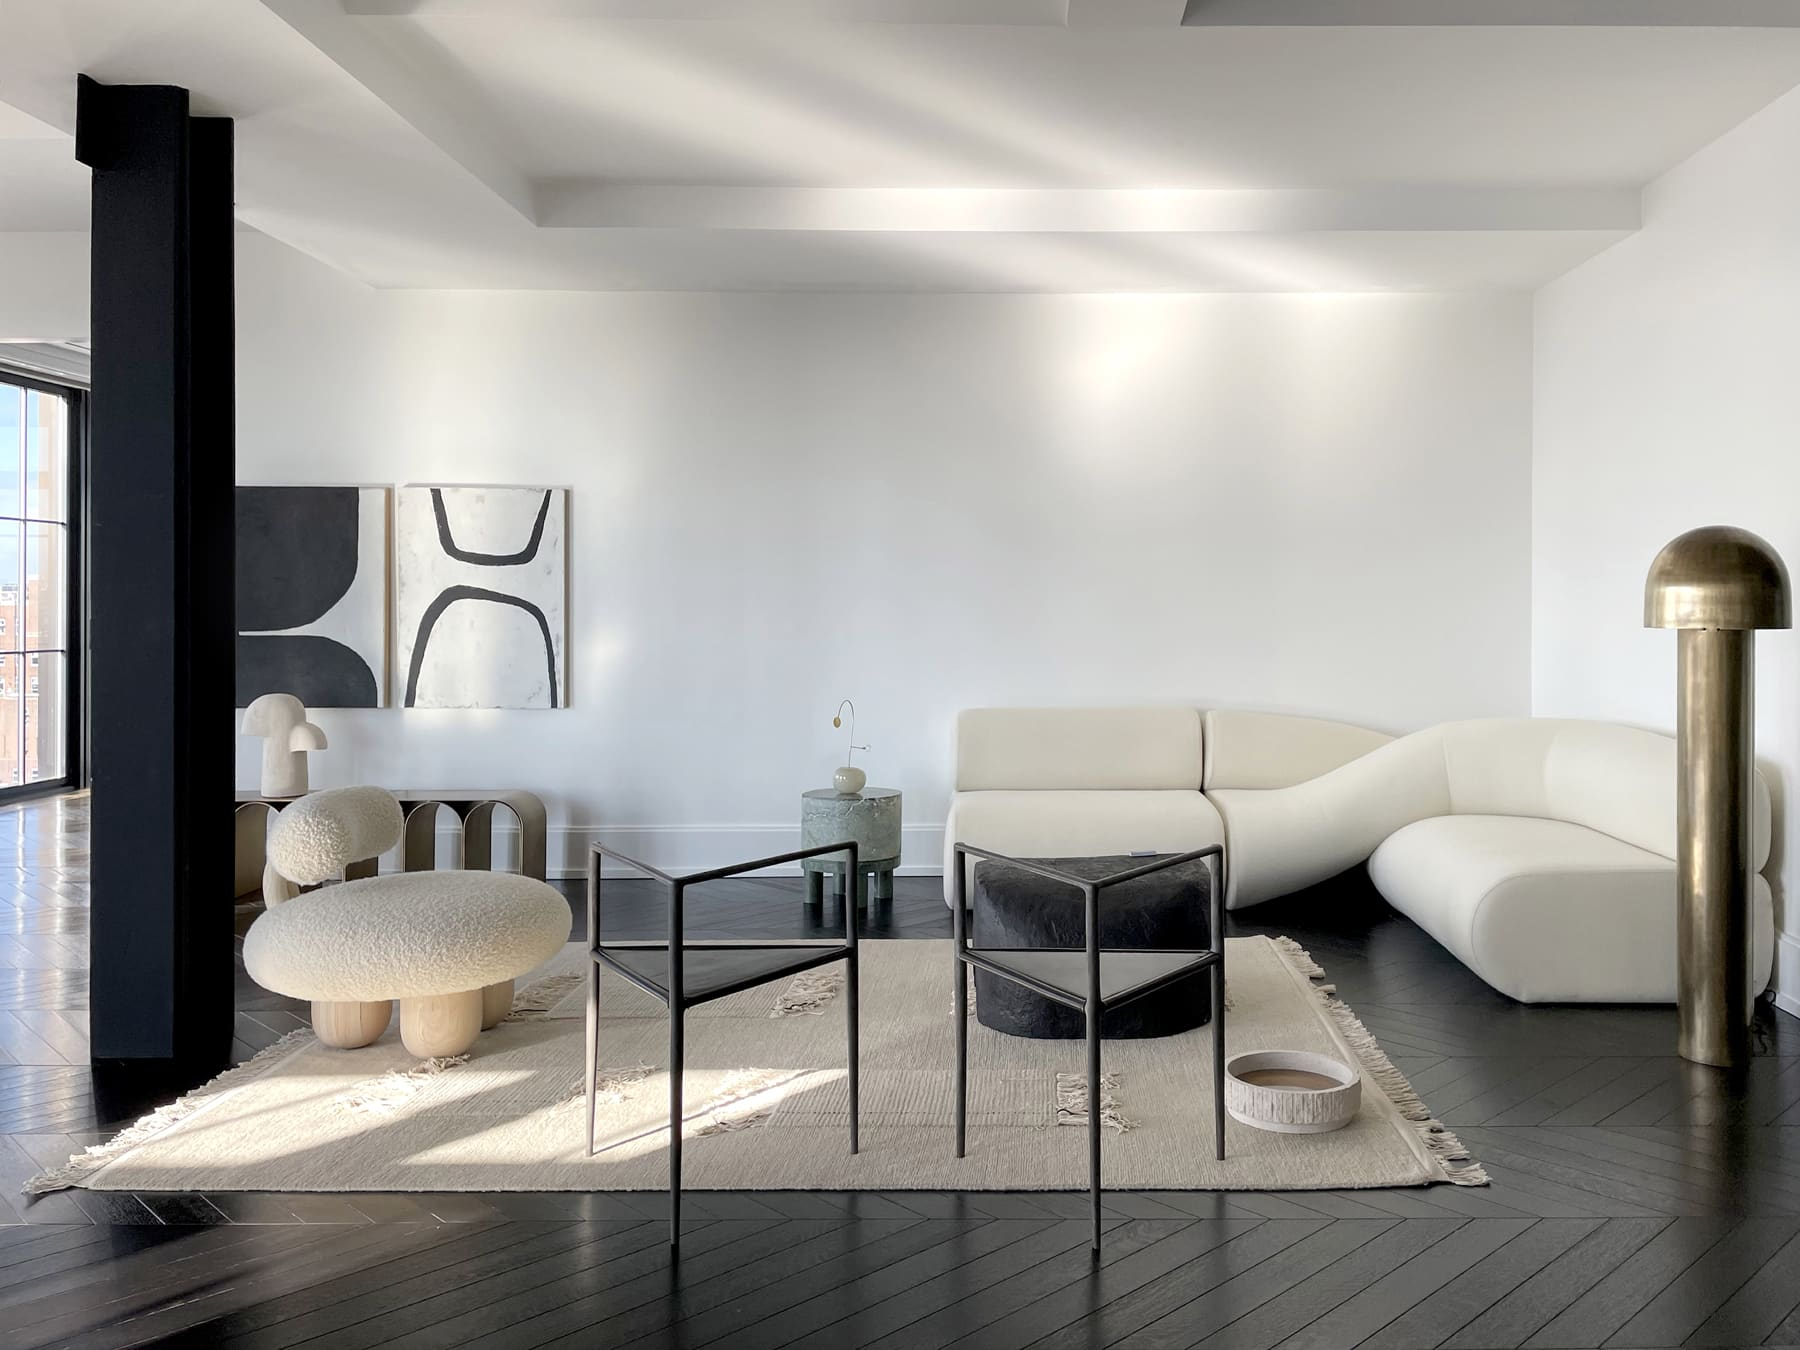 The living room area of Galerie Philia's staged apartment in New York's Walker Tower